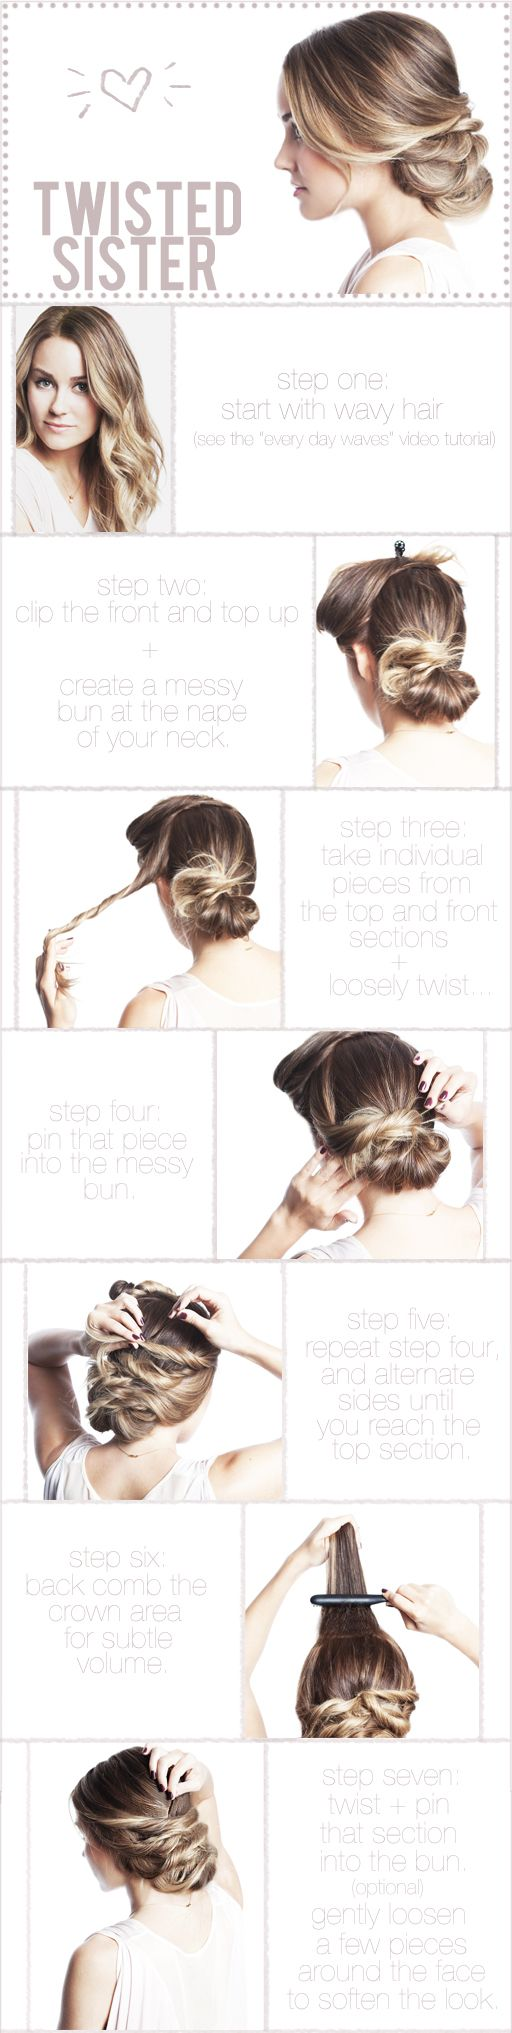 Hair Ideas, Wedding Hair, Hair Tutorials, Long Hair, Messy Buns, Twists Sisters, Hair Style, Lauren Conrad, Updo